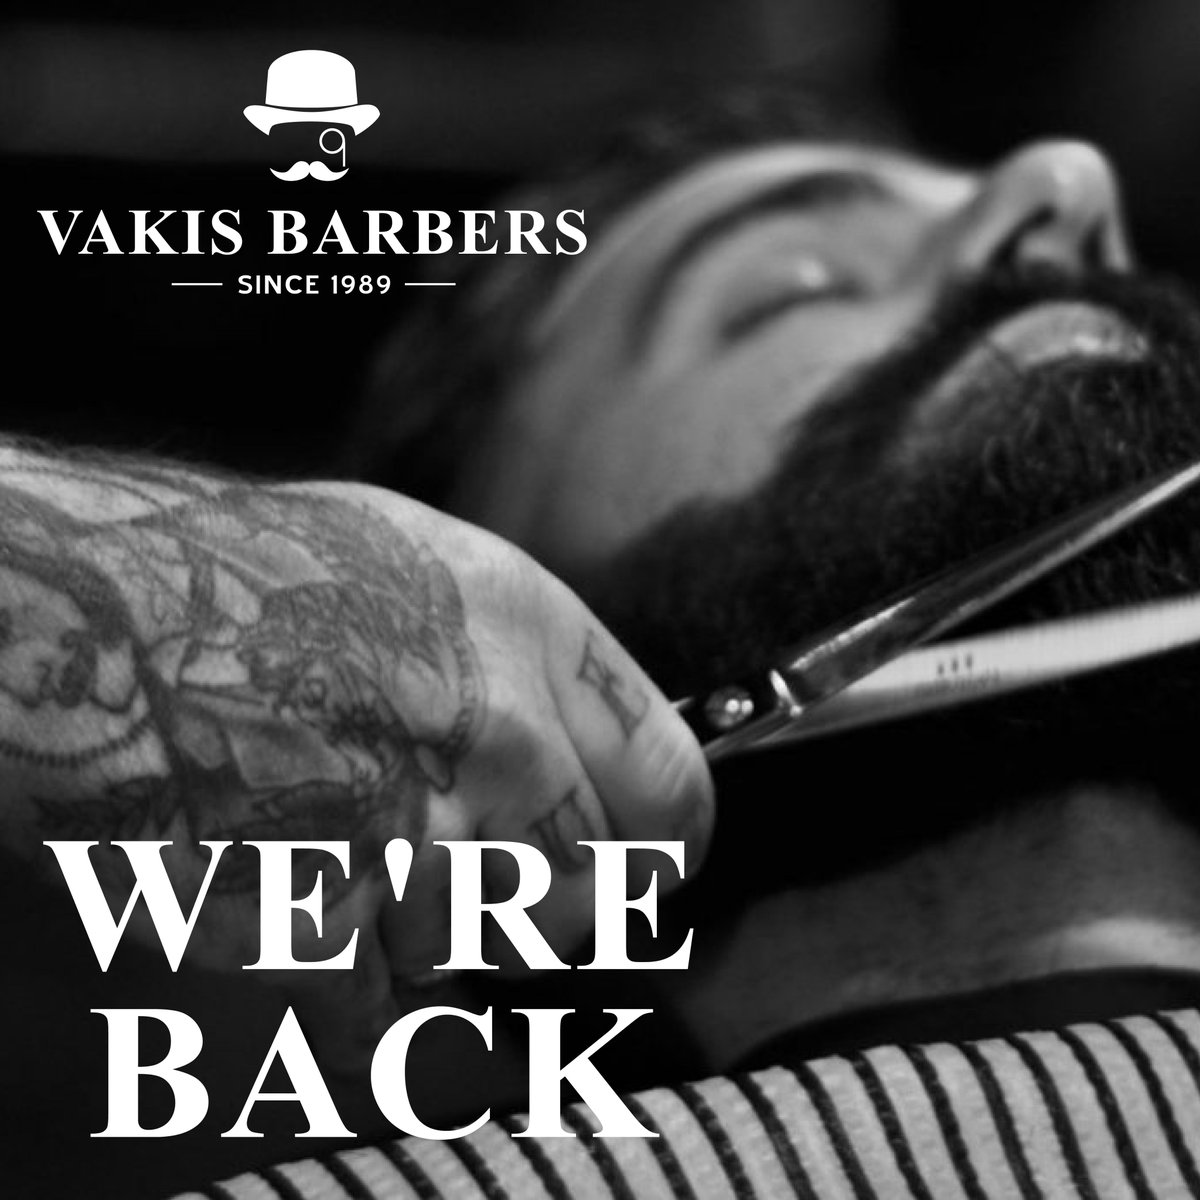 #Vakisbarbers is back! 02088748044 07385265489 133 Wandsworth High Street SW18 4JB Welcome back and see you soon #vakis #vakisbarbers #wandsworthbarbers #barbers #haircut #wetshave #shoplocal #londonbarbers #keepthingslocal #wandsworthlocals #wandsworthpic.twitter.com/WrihYfQnHJ